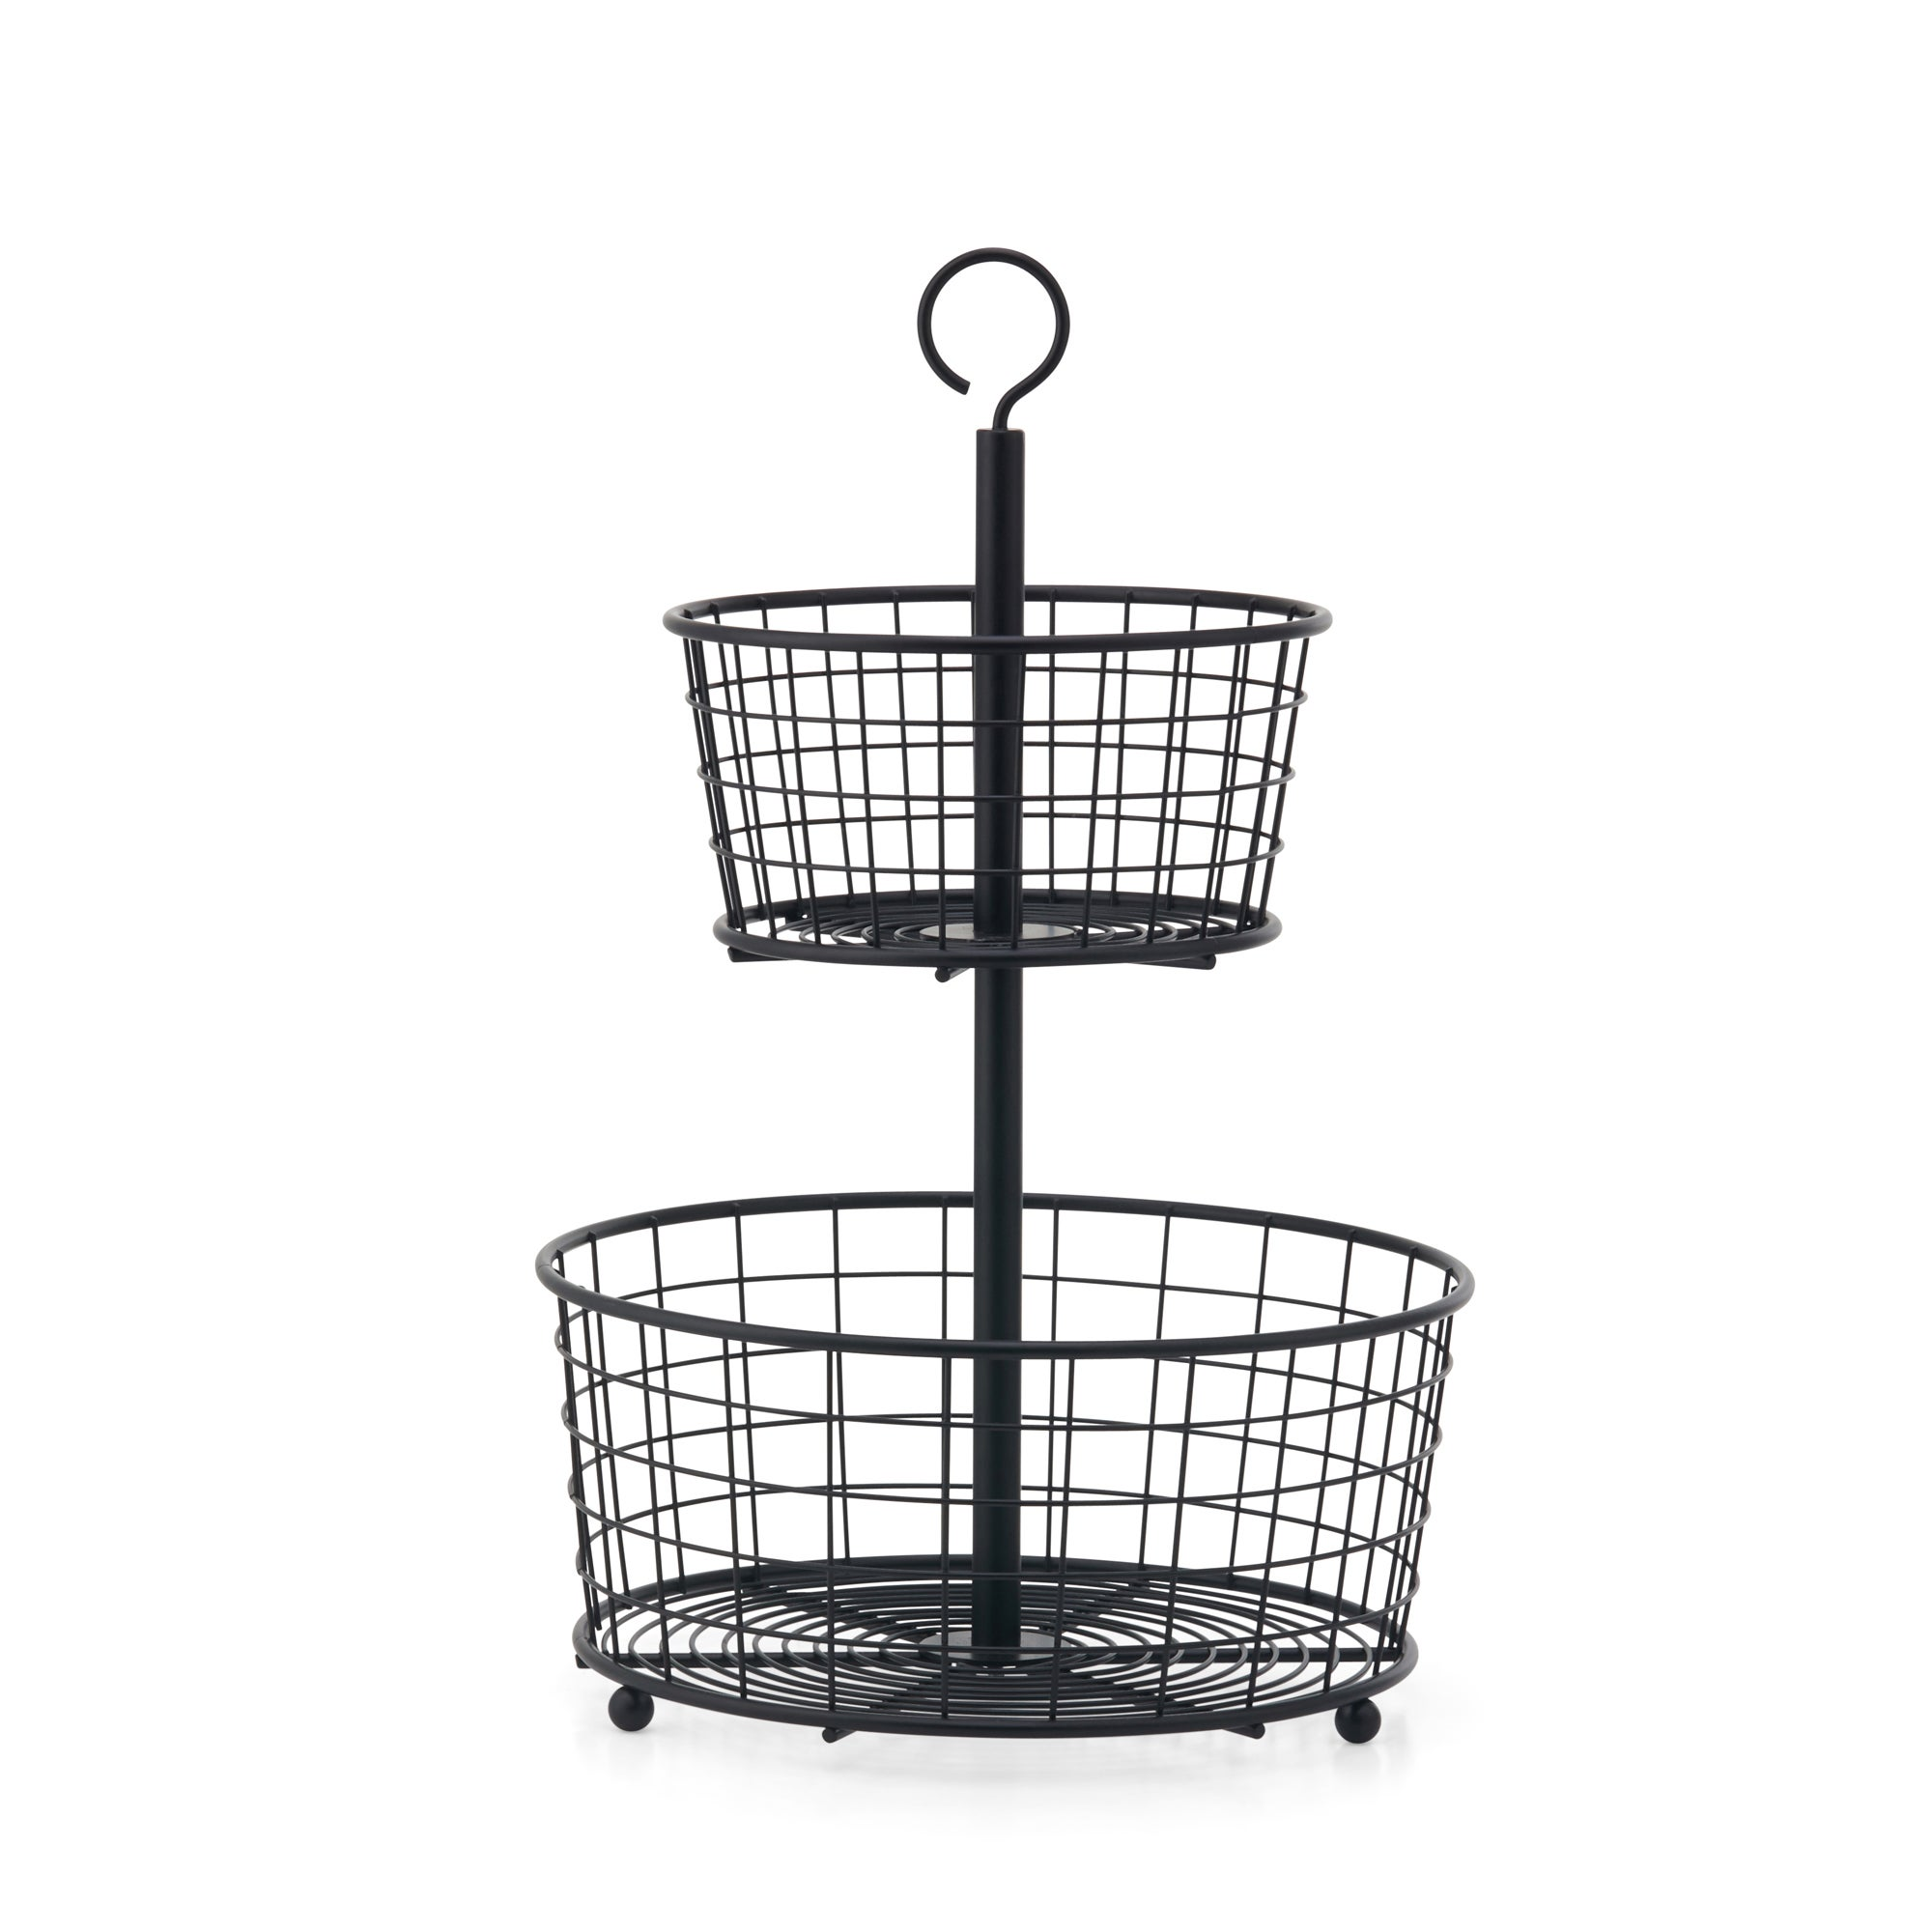 2 Tier Wire Fruit Bowl Black